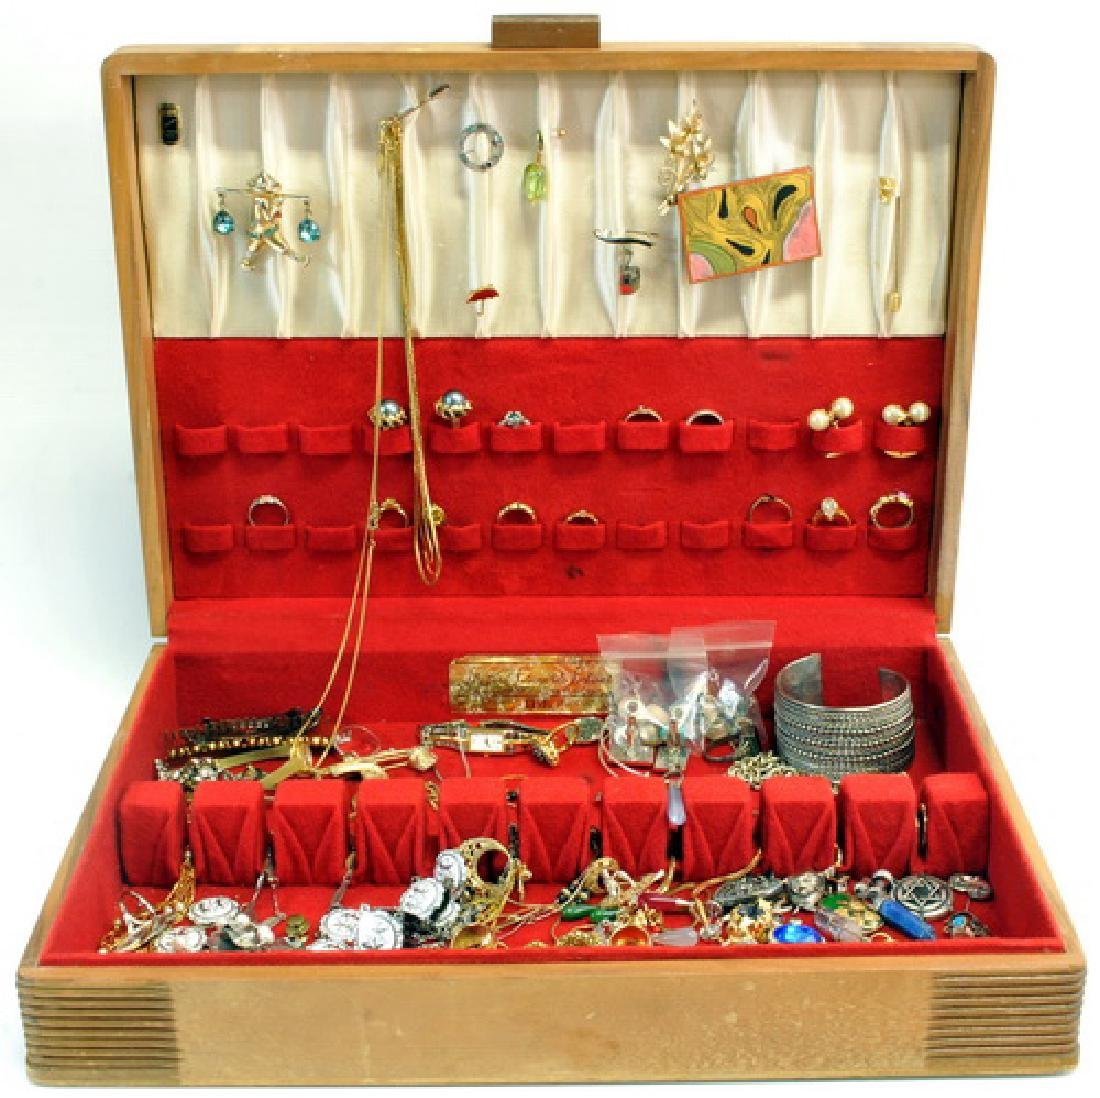 Group of Jewelry in a wooden display box